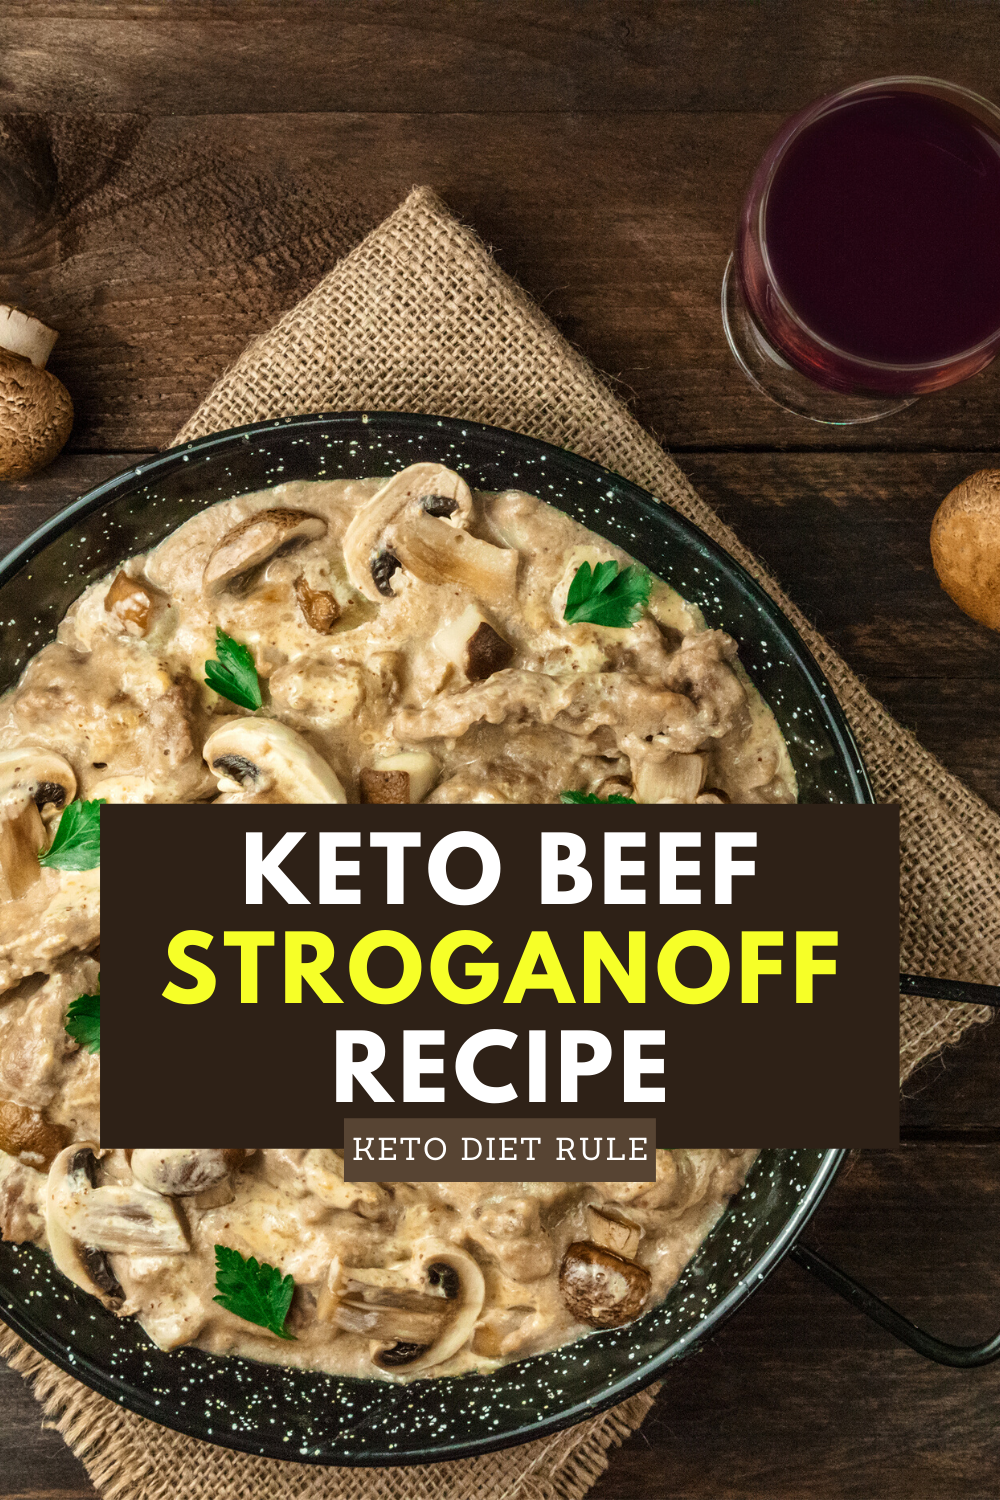 Beef Stroganoff Recipe With Sour Cream Gluten Free Keto Diet Rule Recipe In 2020 Beef Stroganoff Stroganoff Recipe Recipes